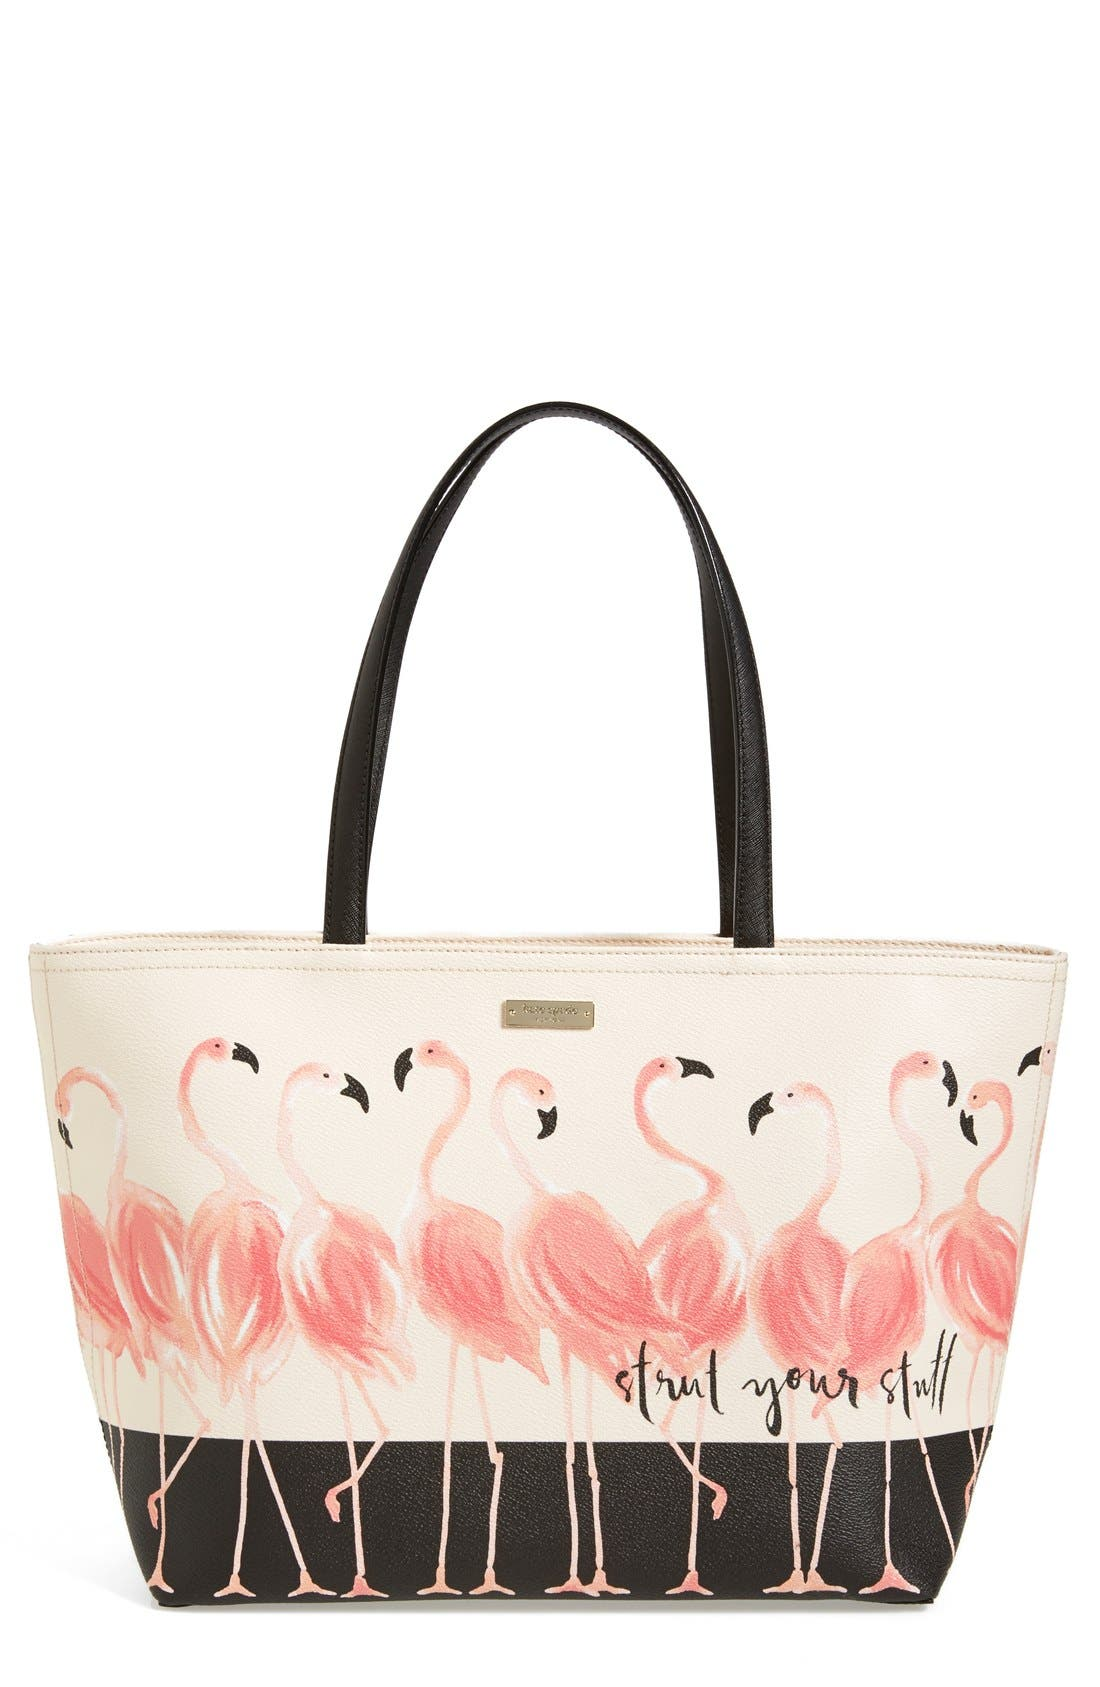 KATE SPADE NEW YORK 'strut your stuff - francis' tote, Main, color, 100